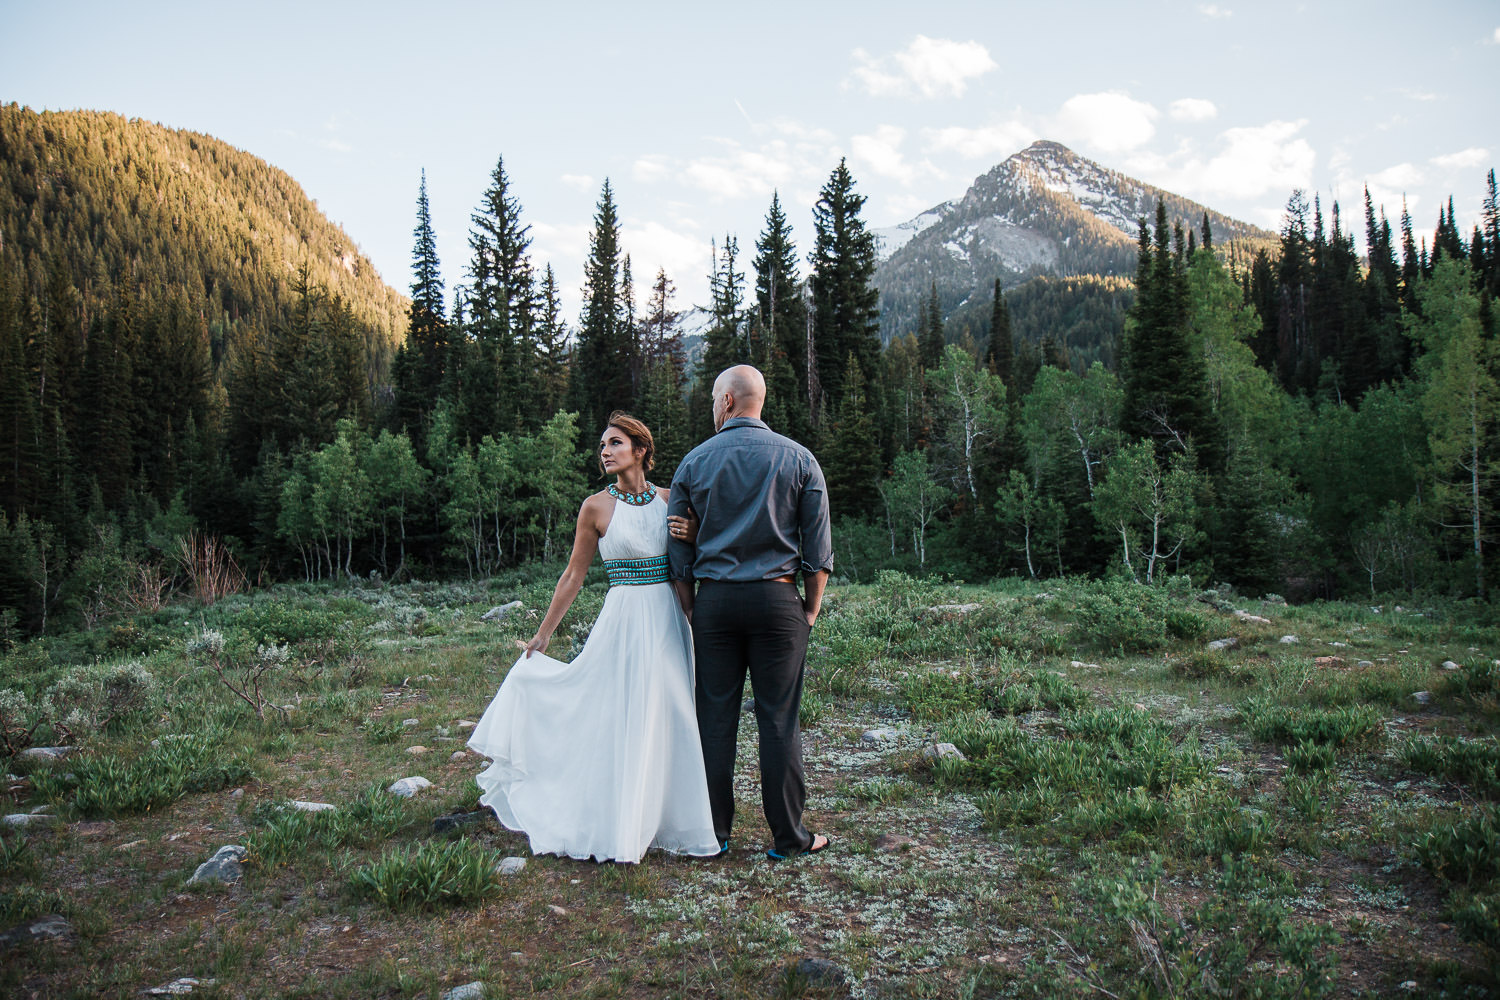 Adventure Anniversary photoshoot by Kyle Loves Tori Photography